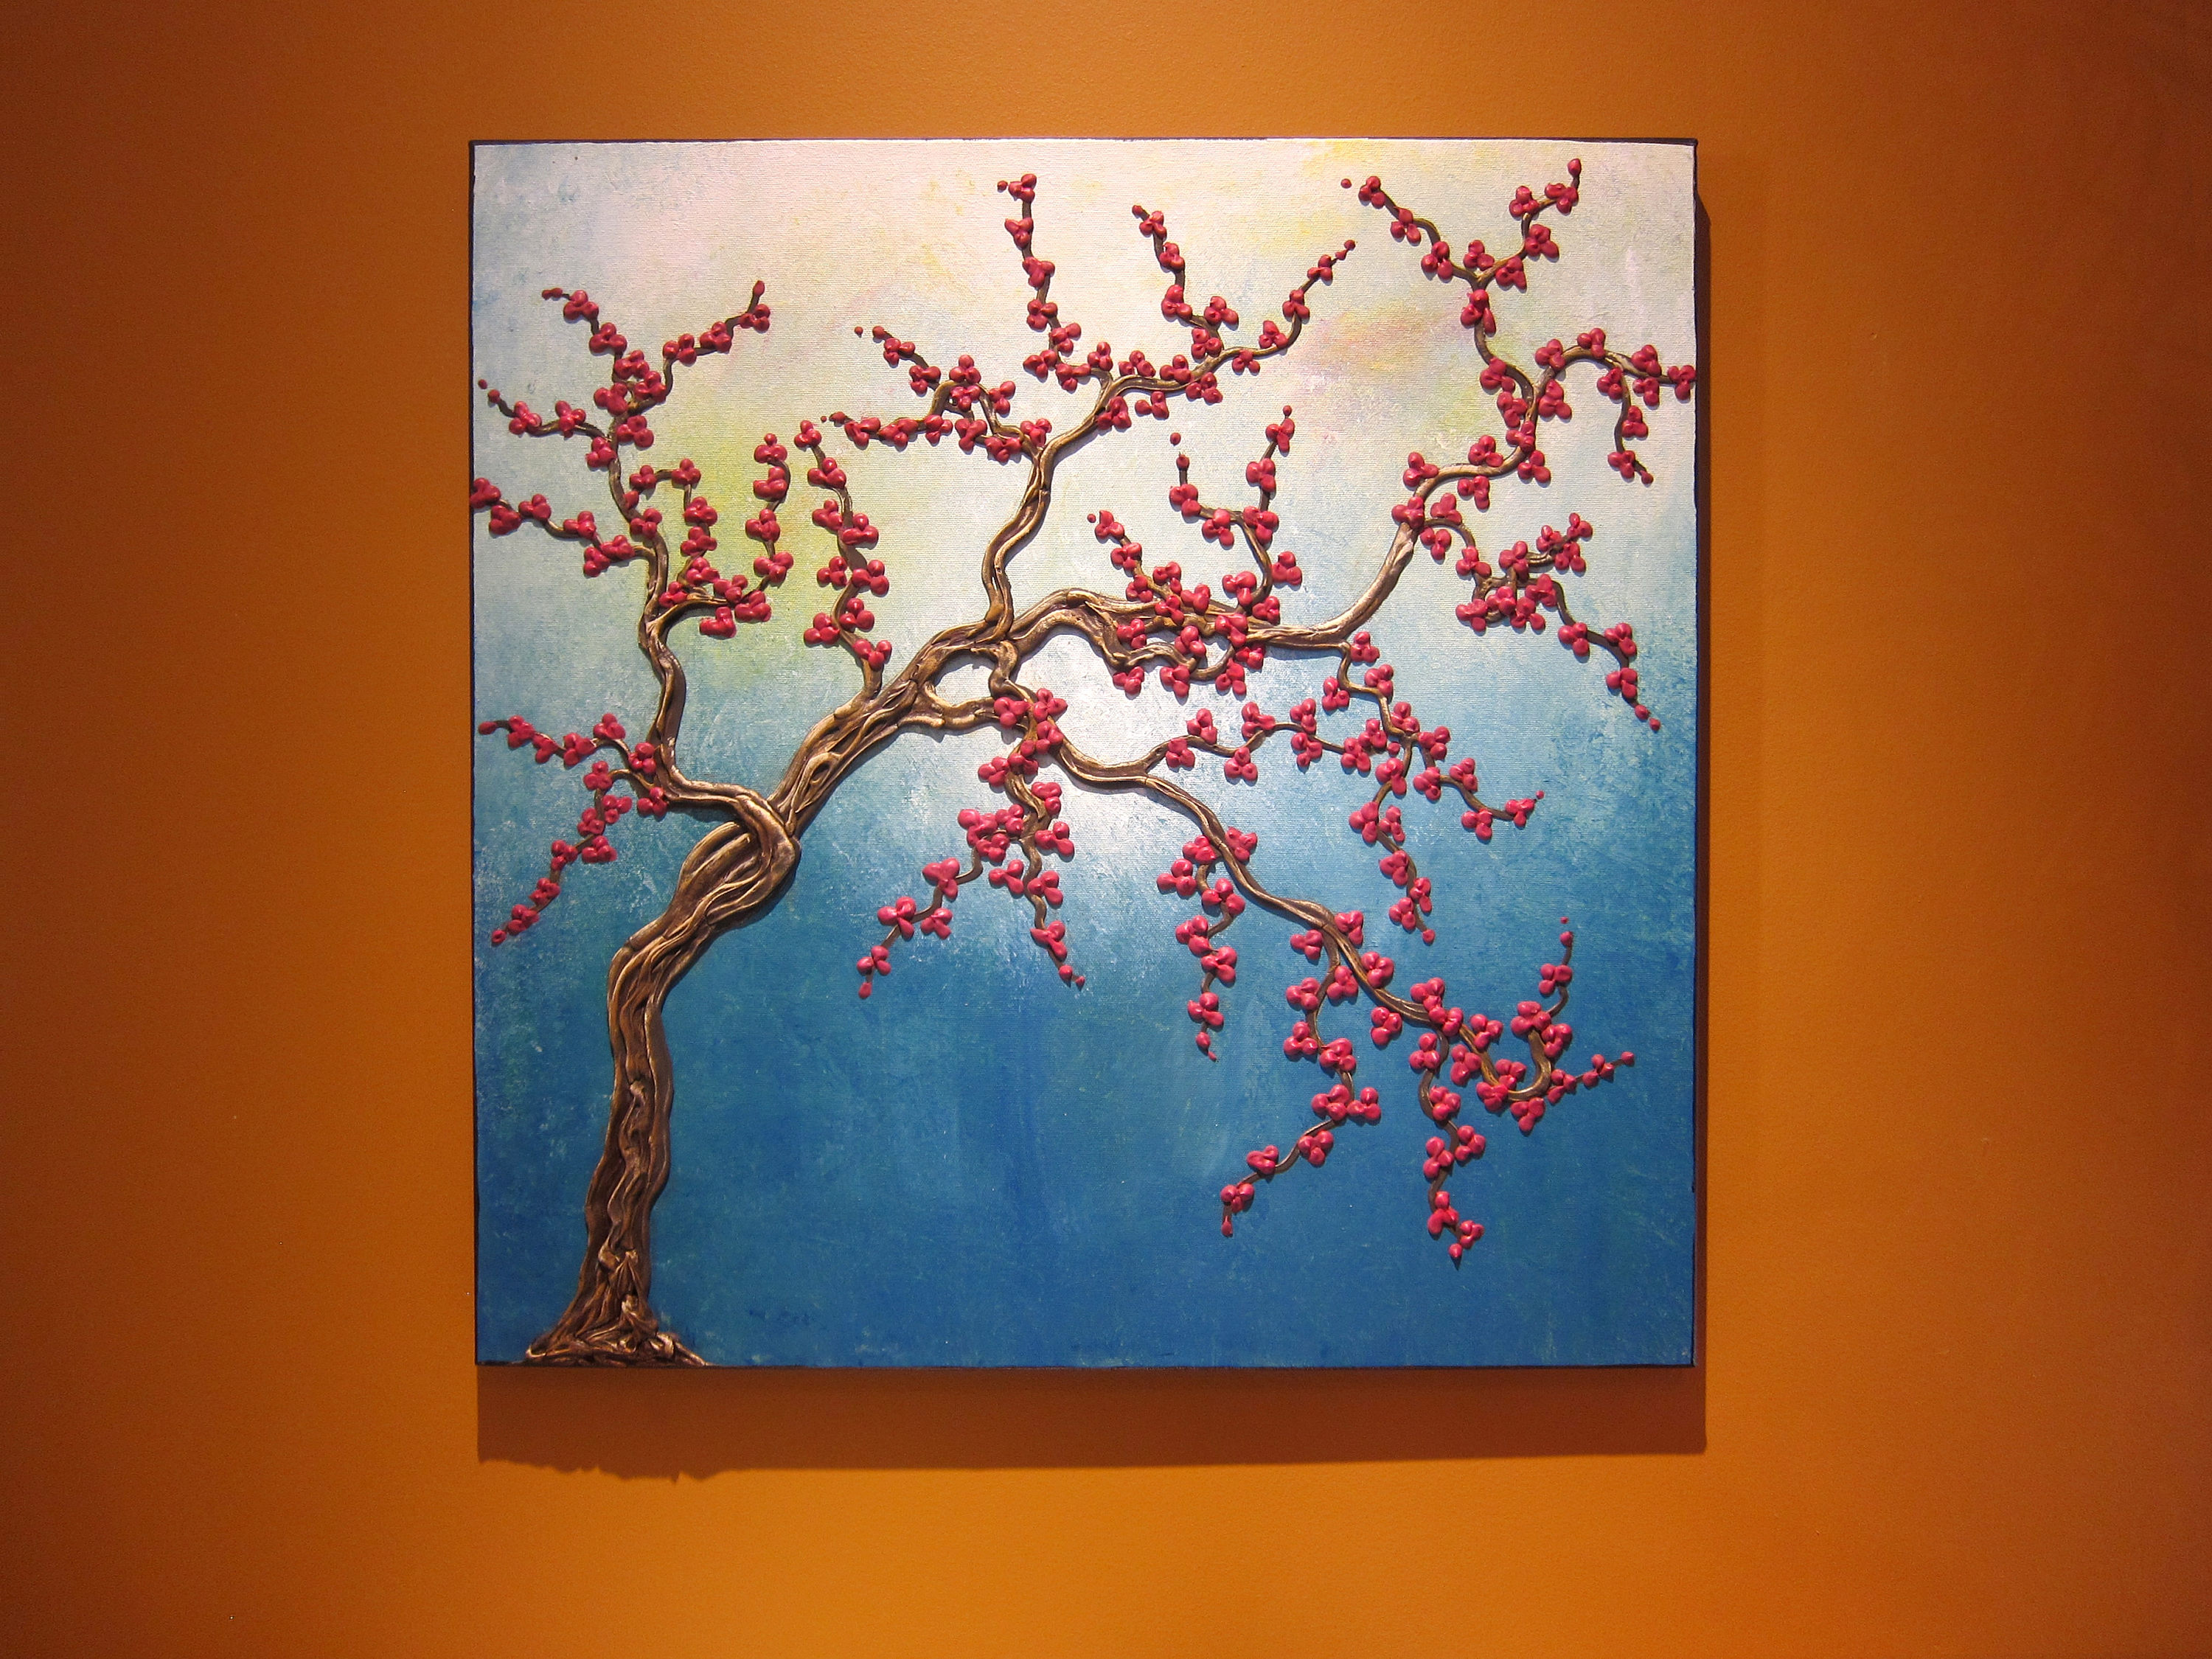 Turquoise Cherry Blossom Tree Painting Super Three Dimensional